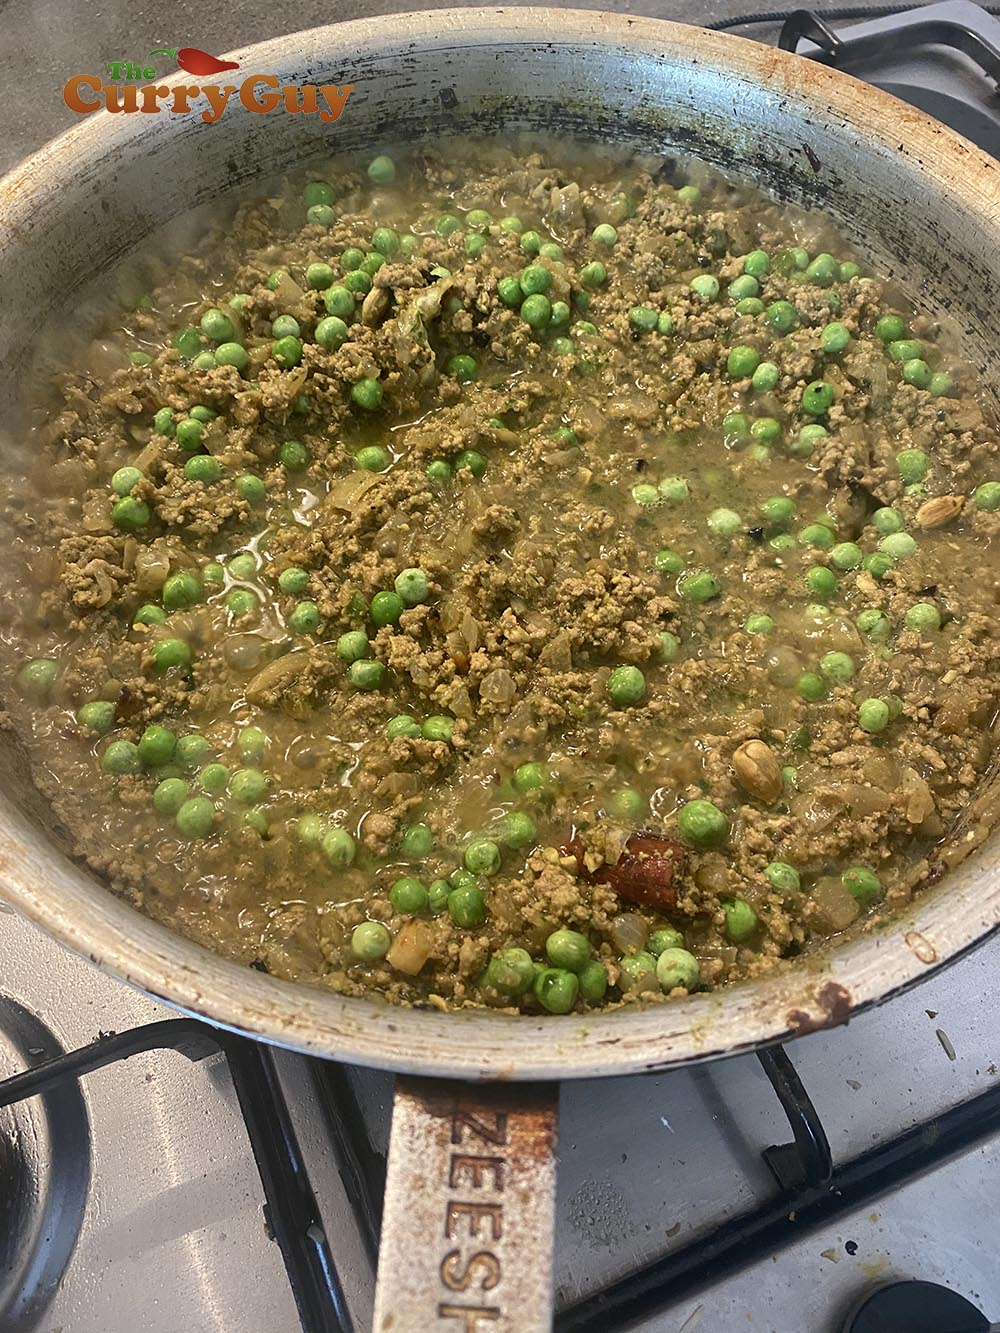 Adding the peas.